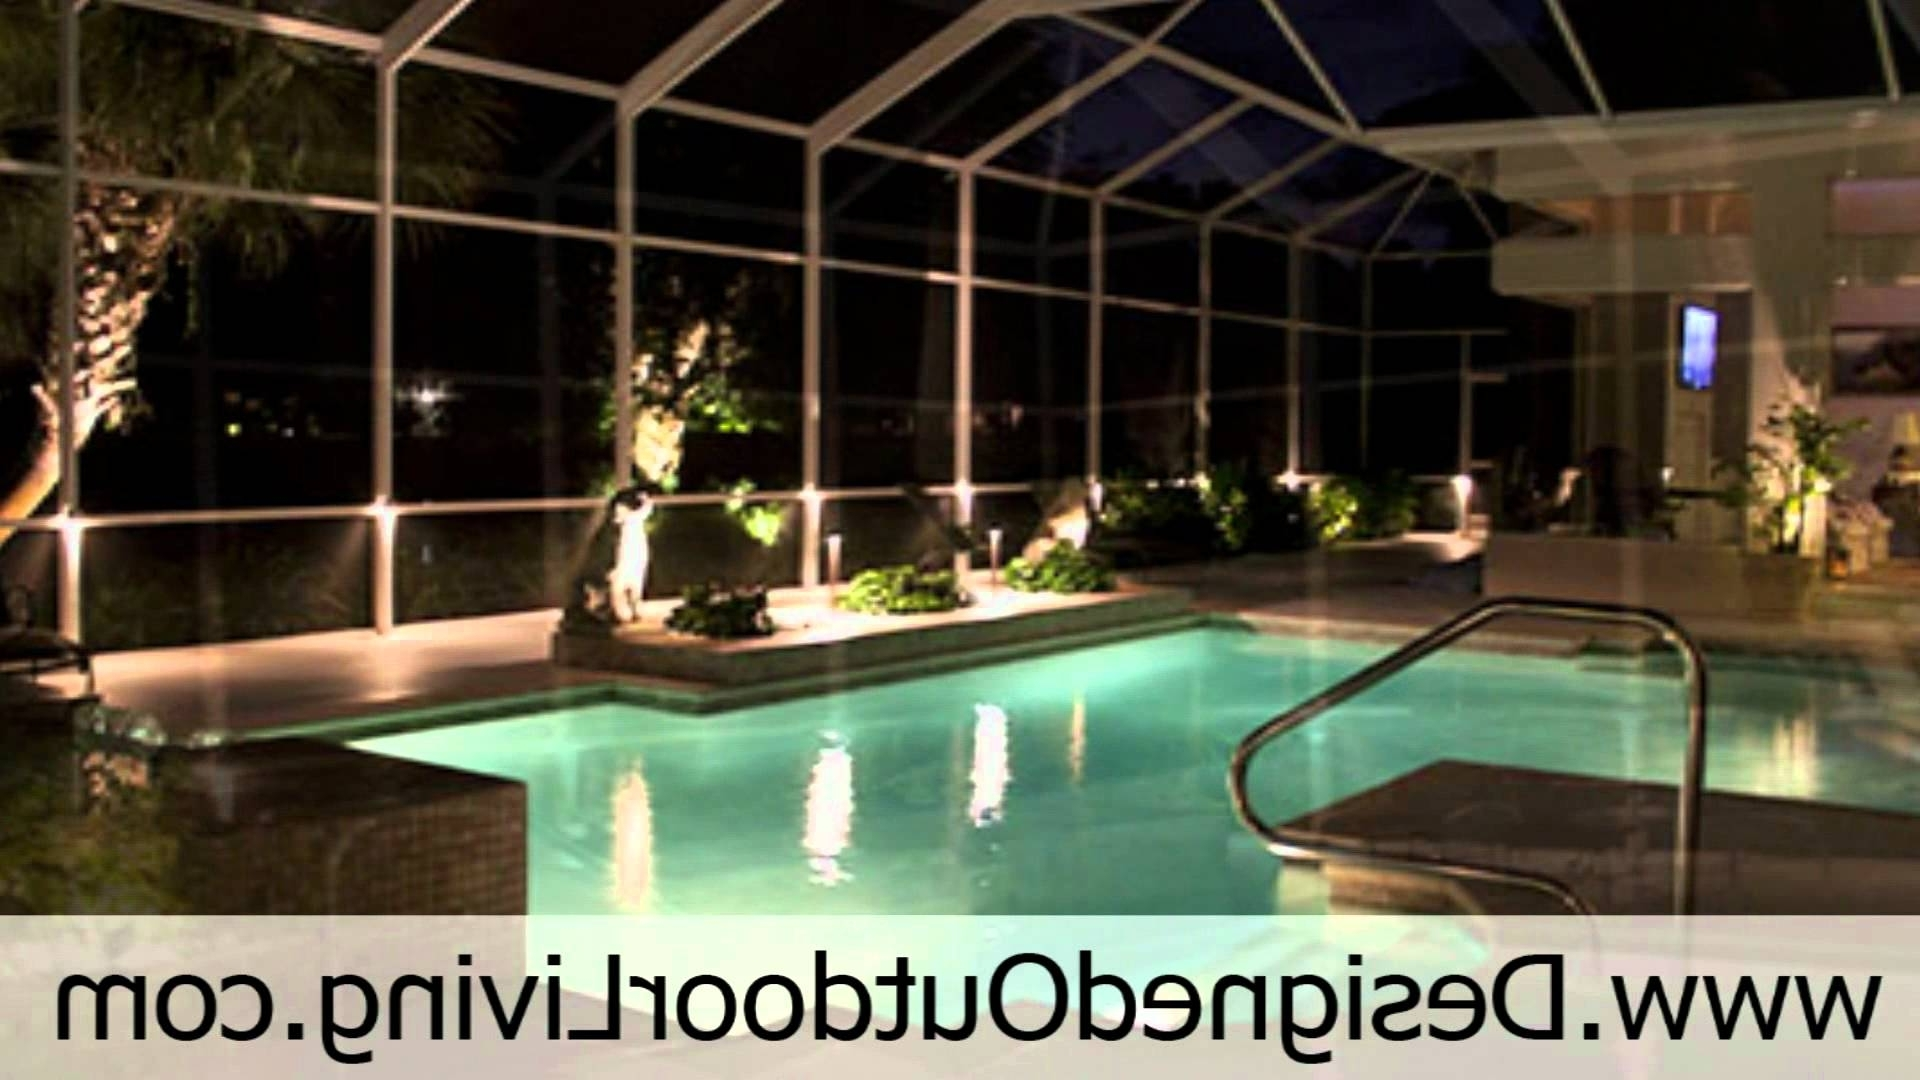 Outdoor Lighting Service For Swimming Pools Inside Pool Cages And Pertaining To Favorite Outdoor Hanging Pool Lights (View 14 of 20)